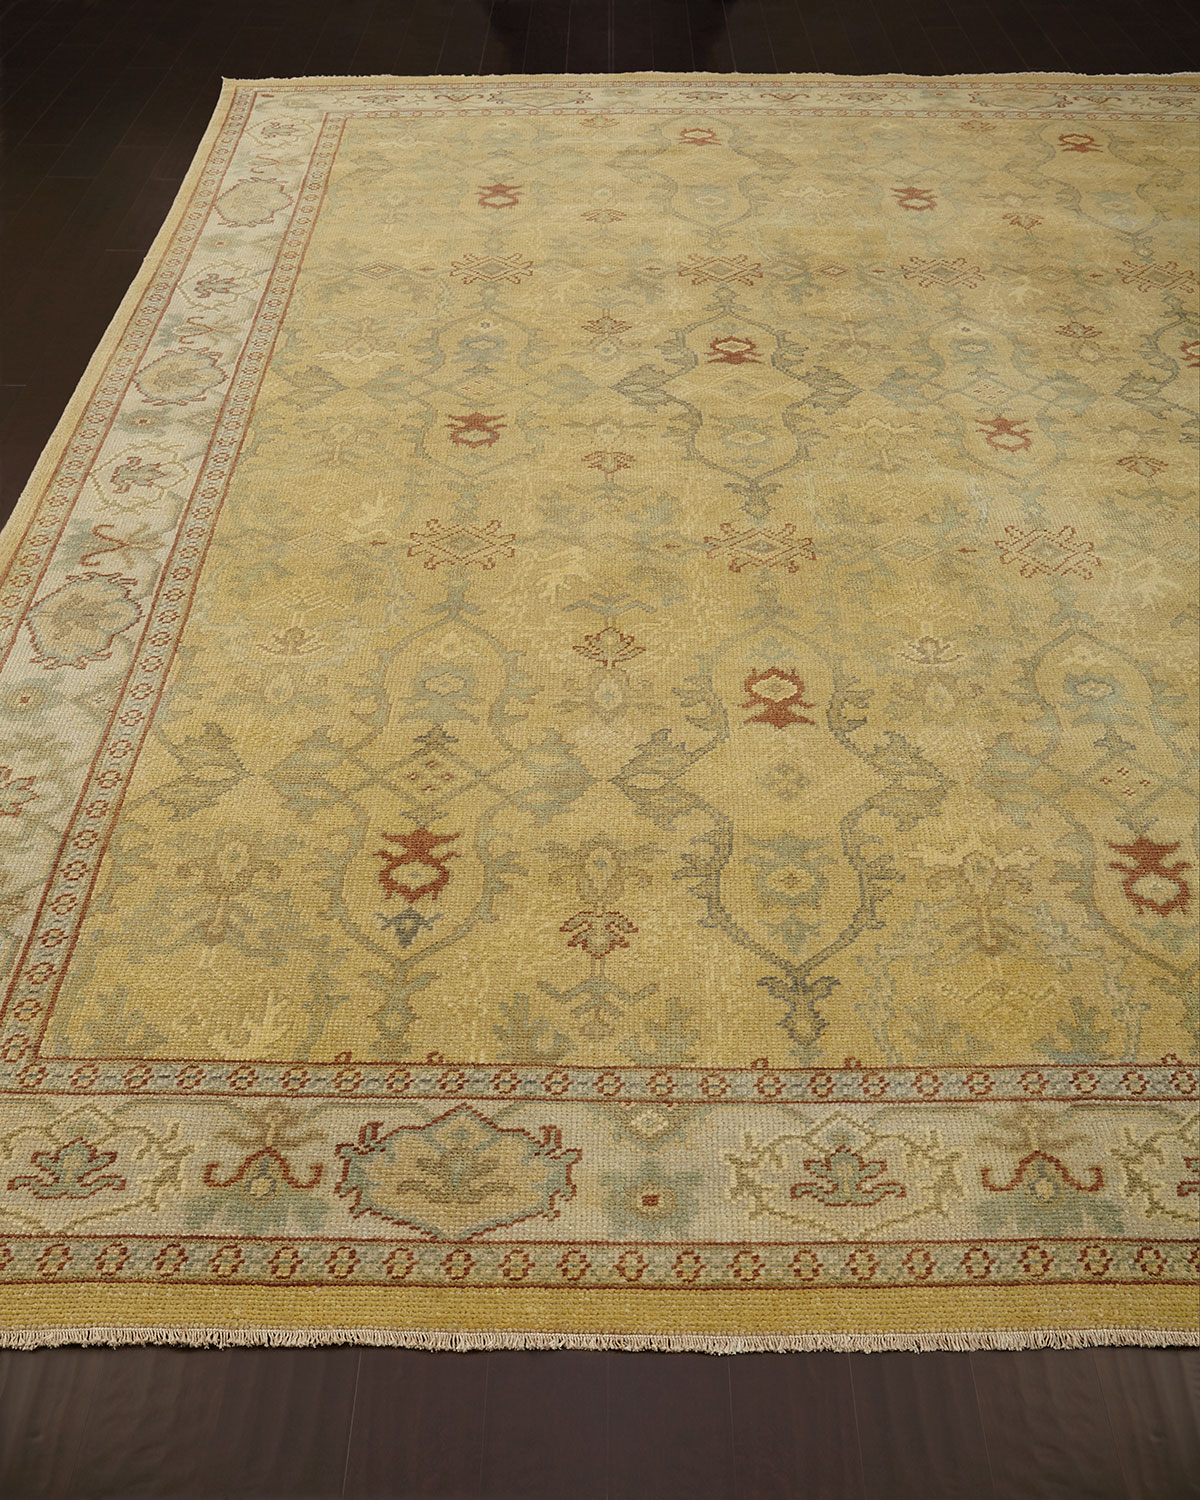 Raja Golden Rug 6 X 9